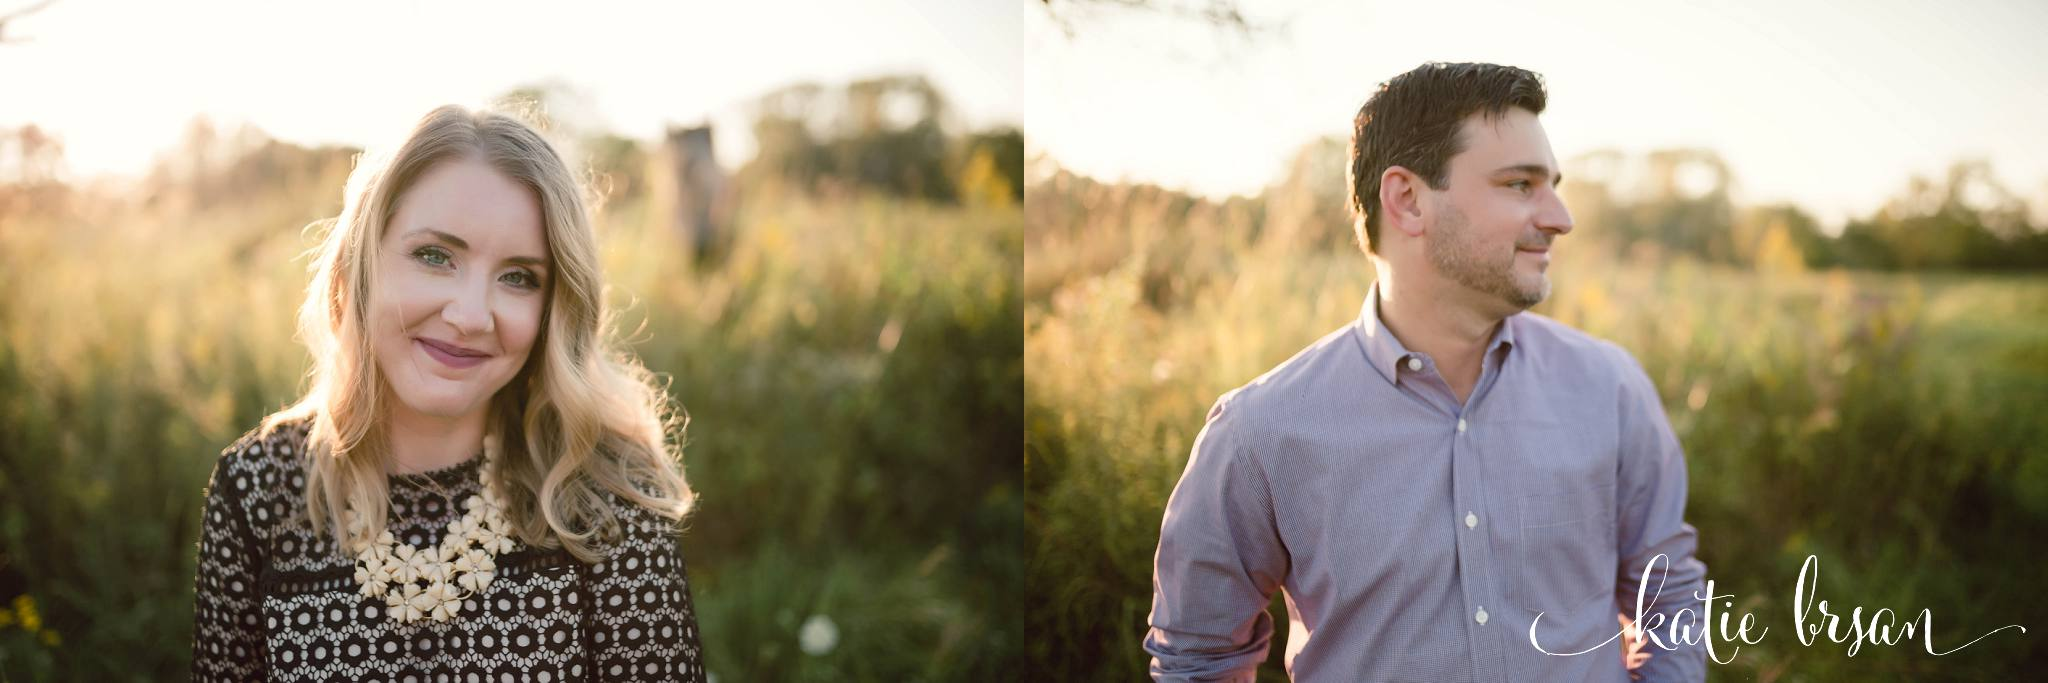 Mokena_EngagementSession_RuffledFeathers_Wedding_0953.jpg